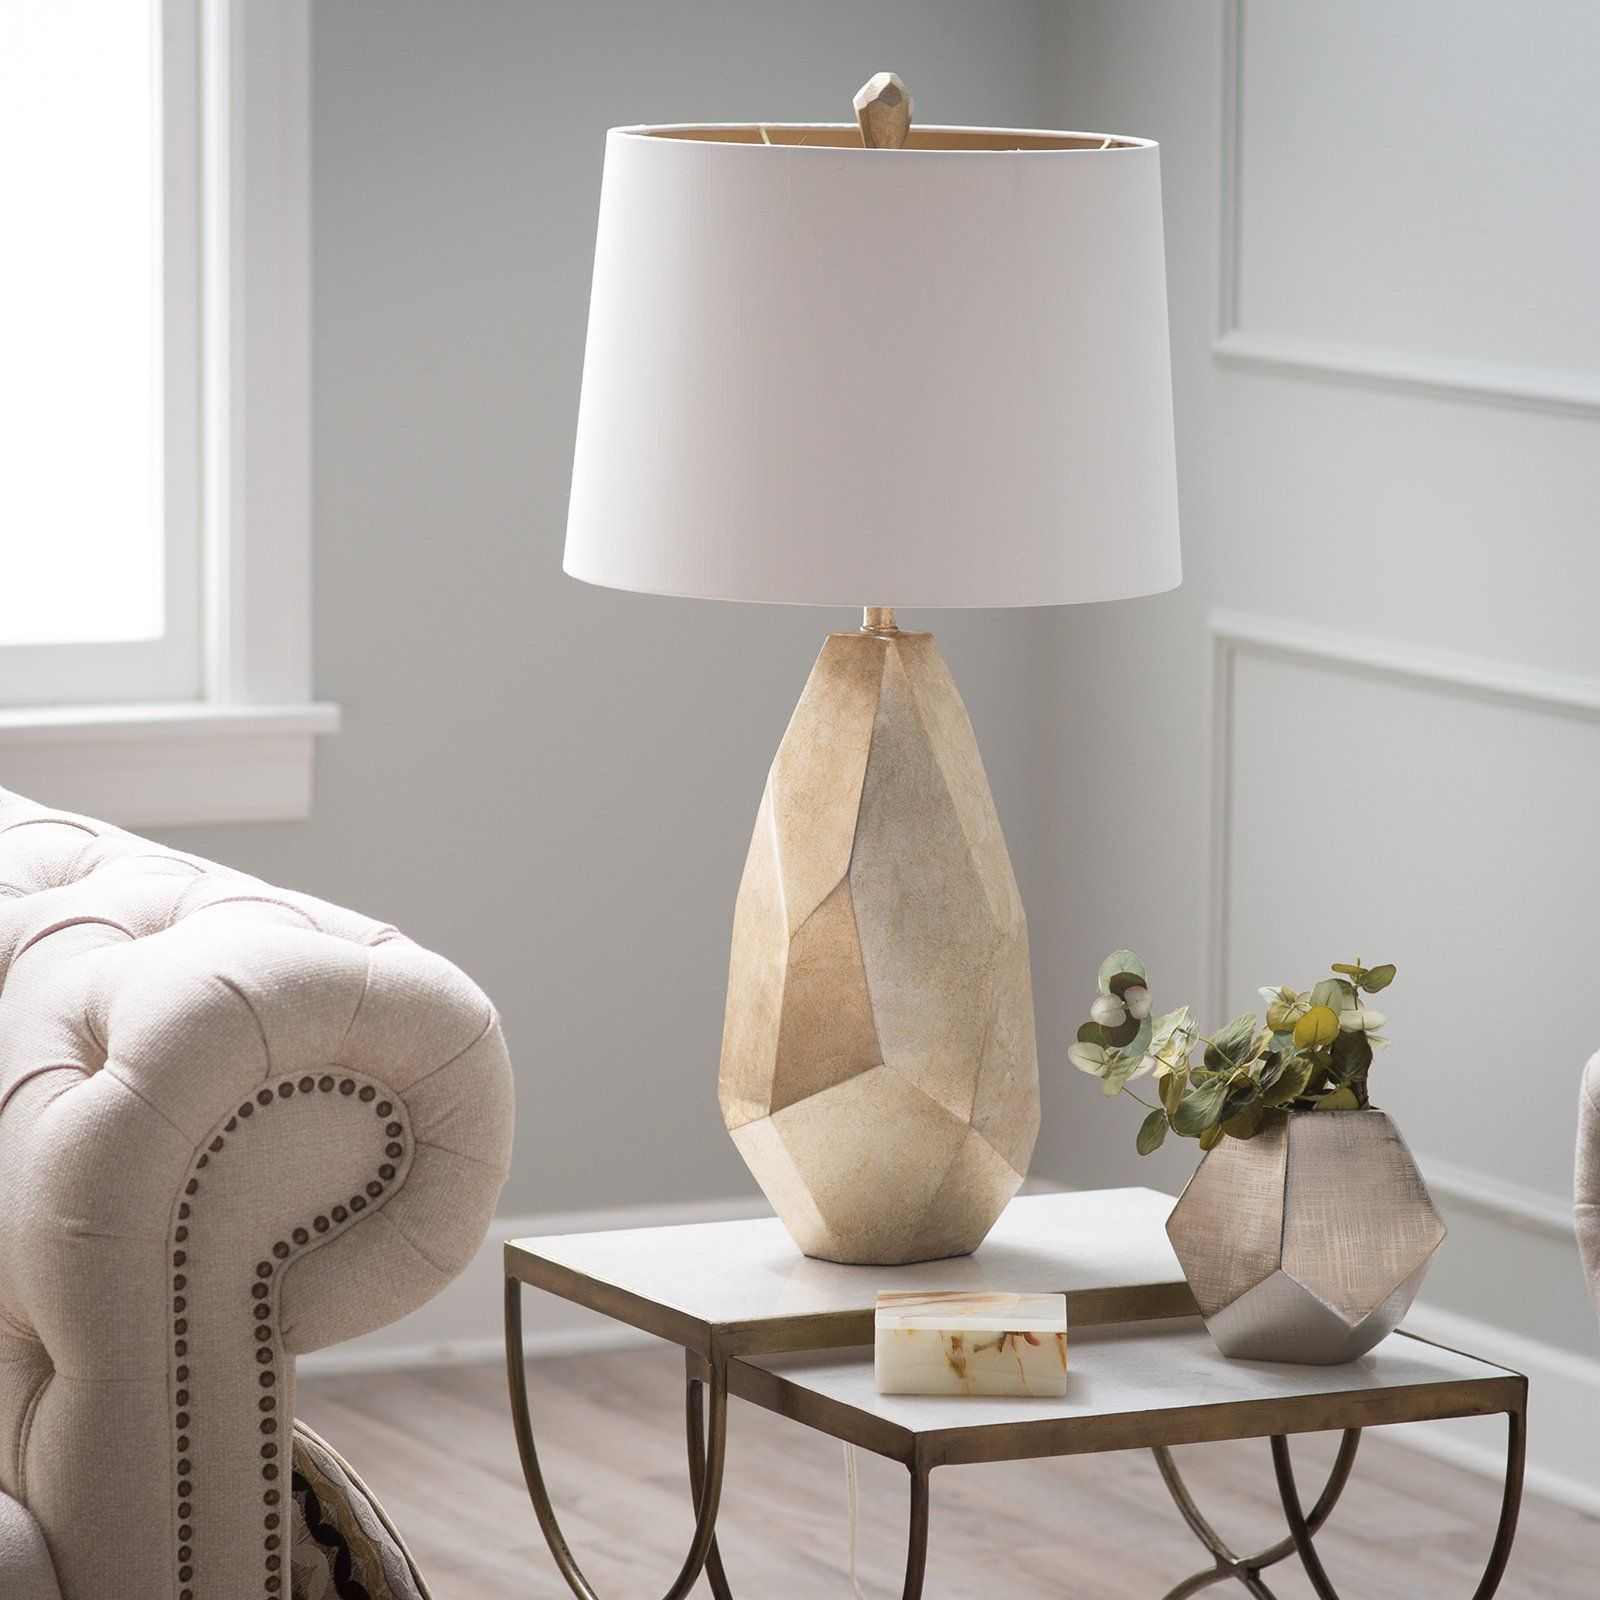 Pacific Coast Lighting Avizza Table Lamp   Faceted And Finished To Bringu2026